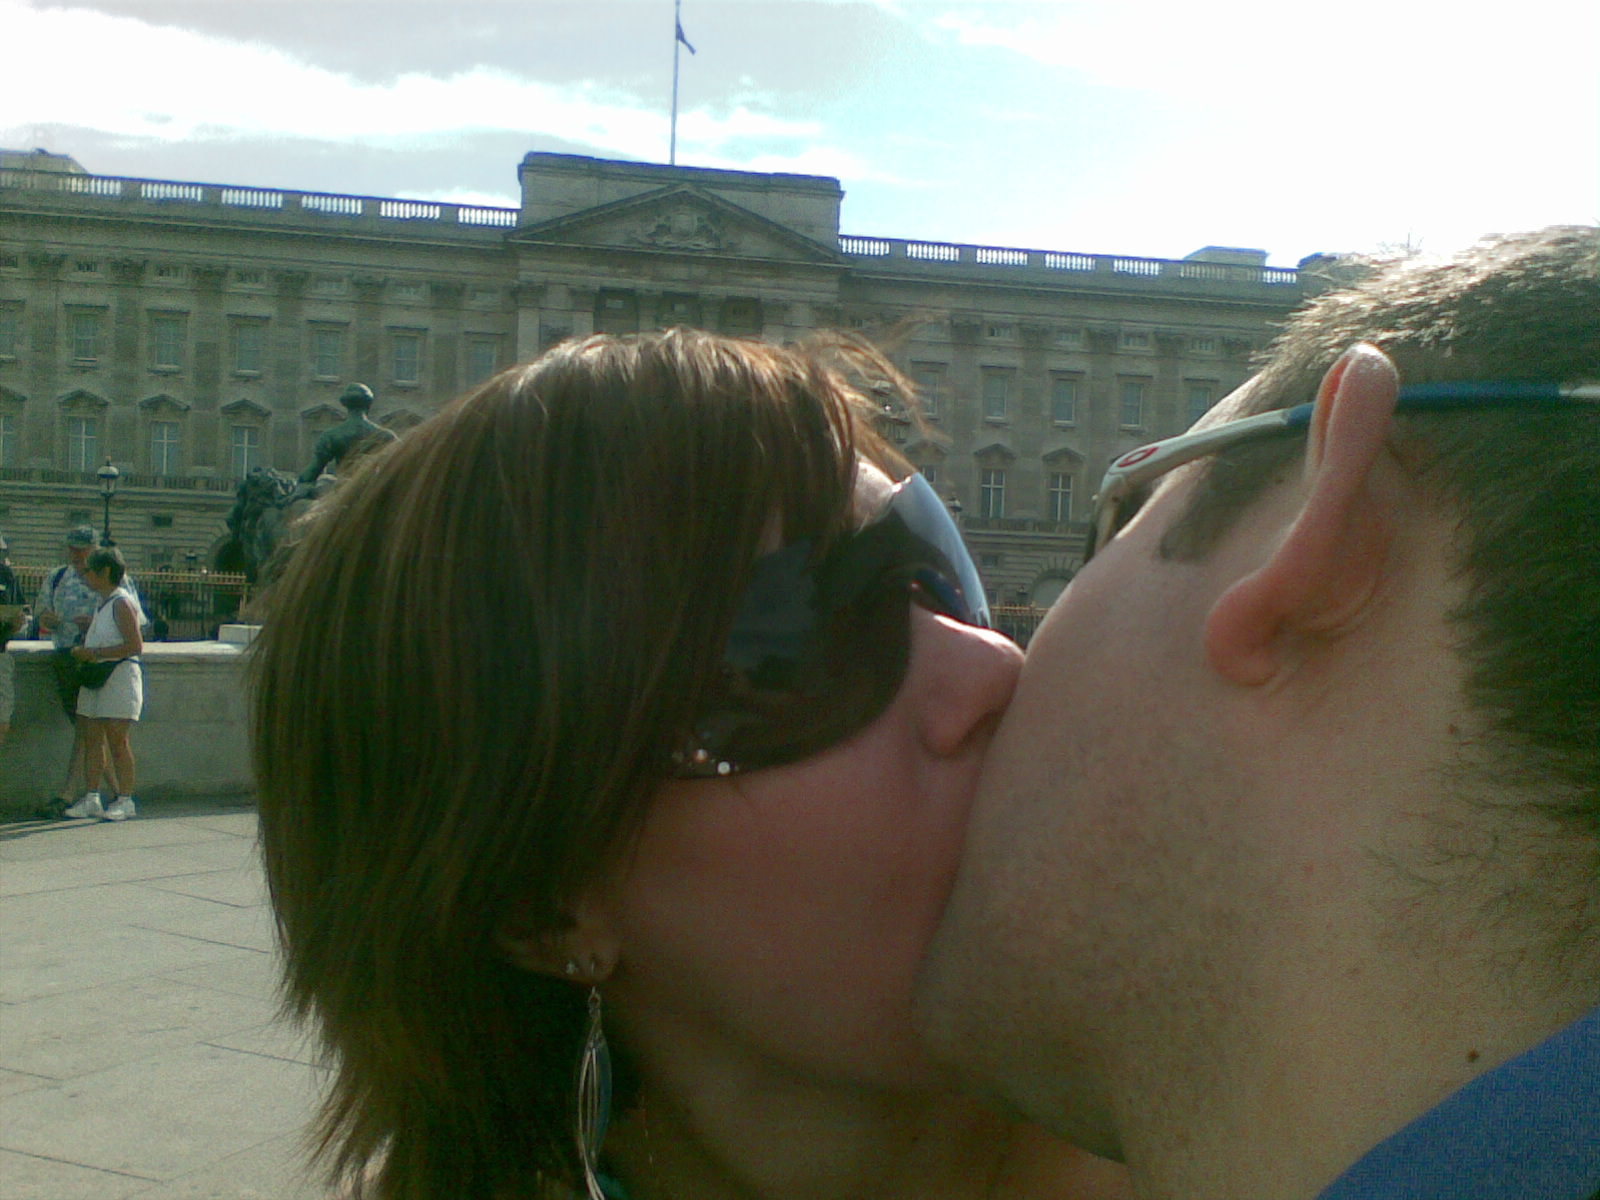 Kissing in front of Buckingham Palace